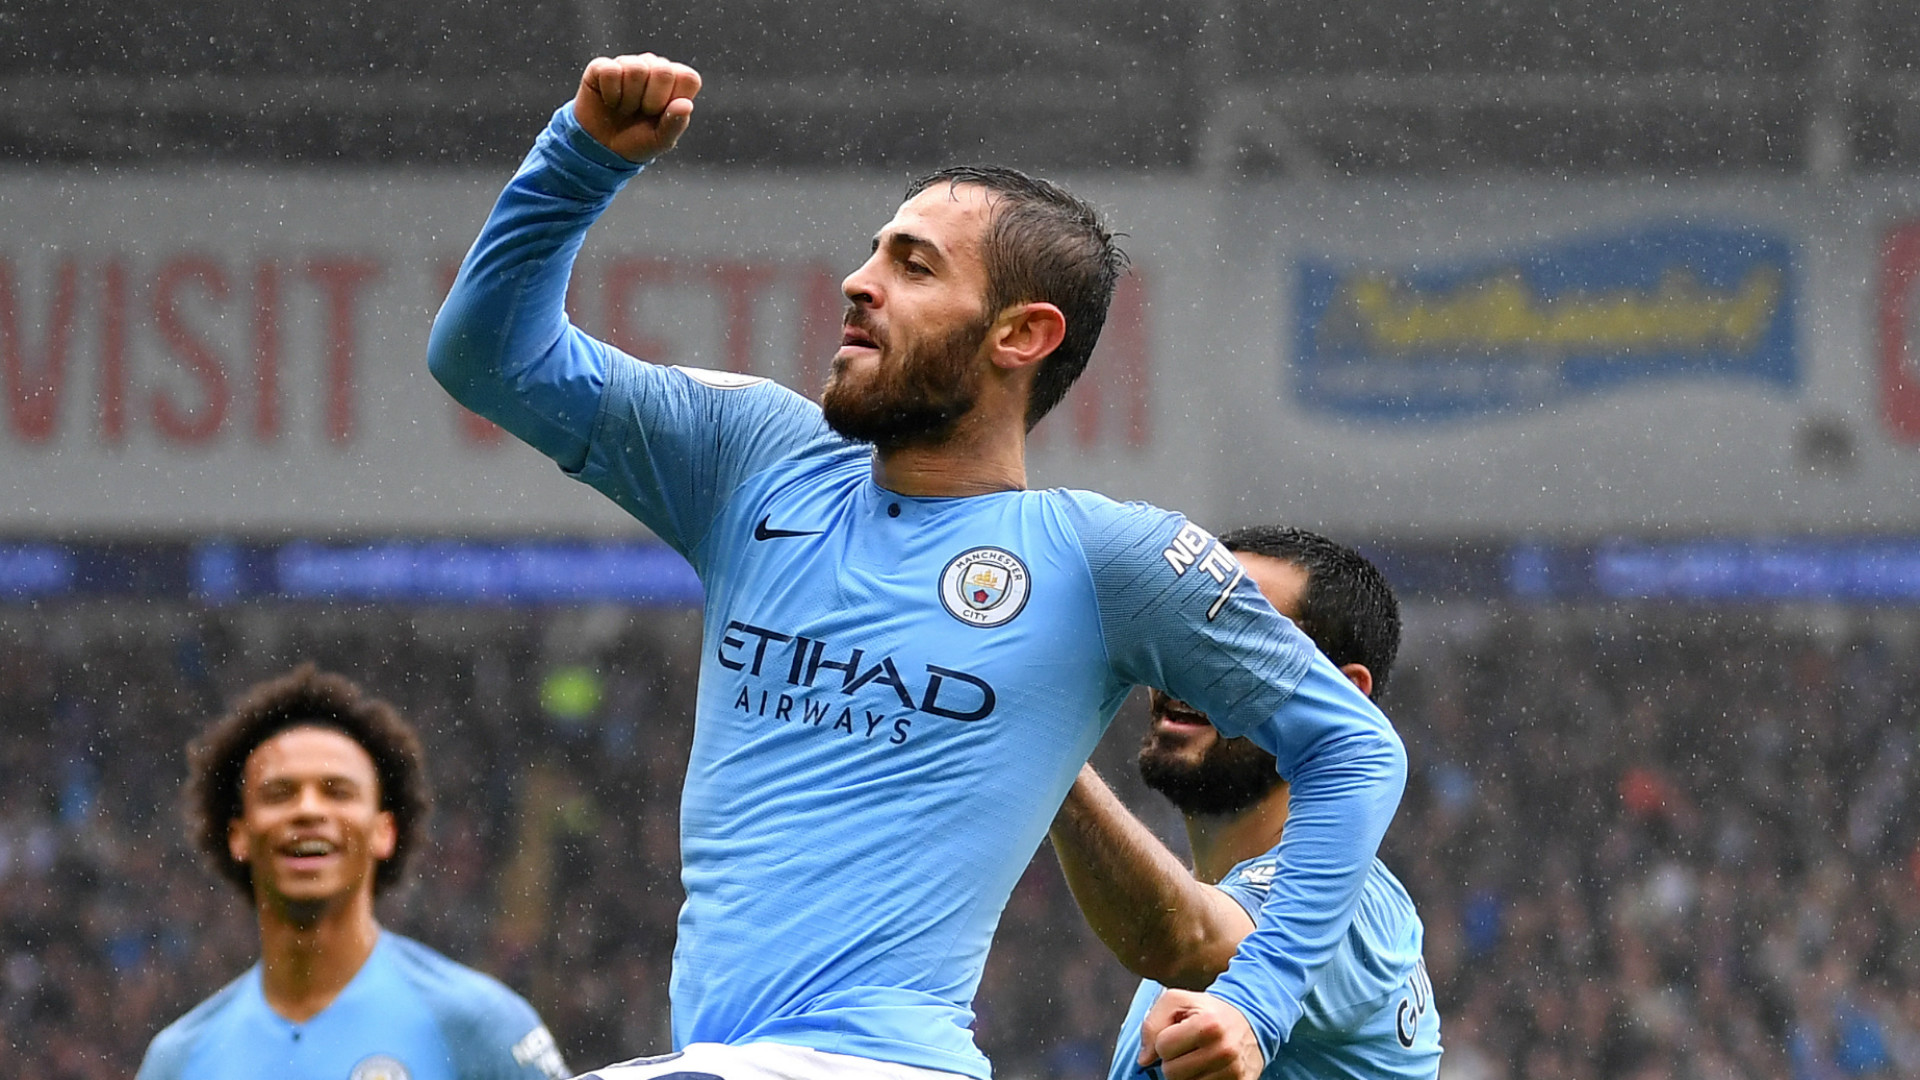 Man City Team News: Injuries, Suspensions And Line-up Vs